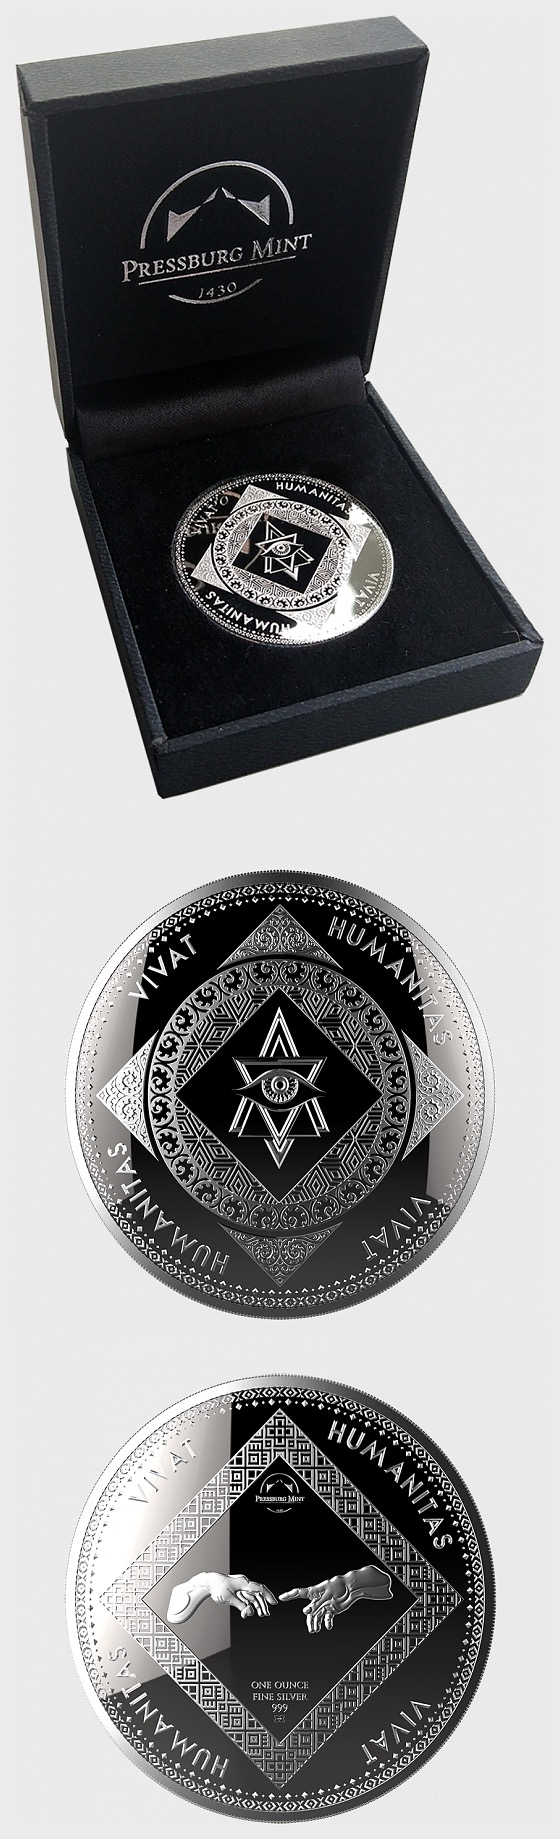 Vivat Humanitas - Medallion Proof Like - Gift Box - Silver Bullion